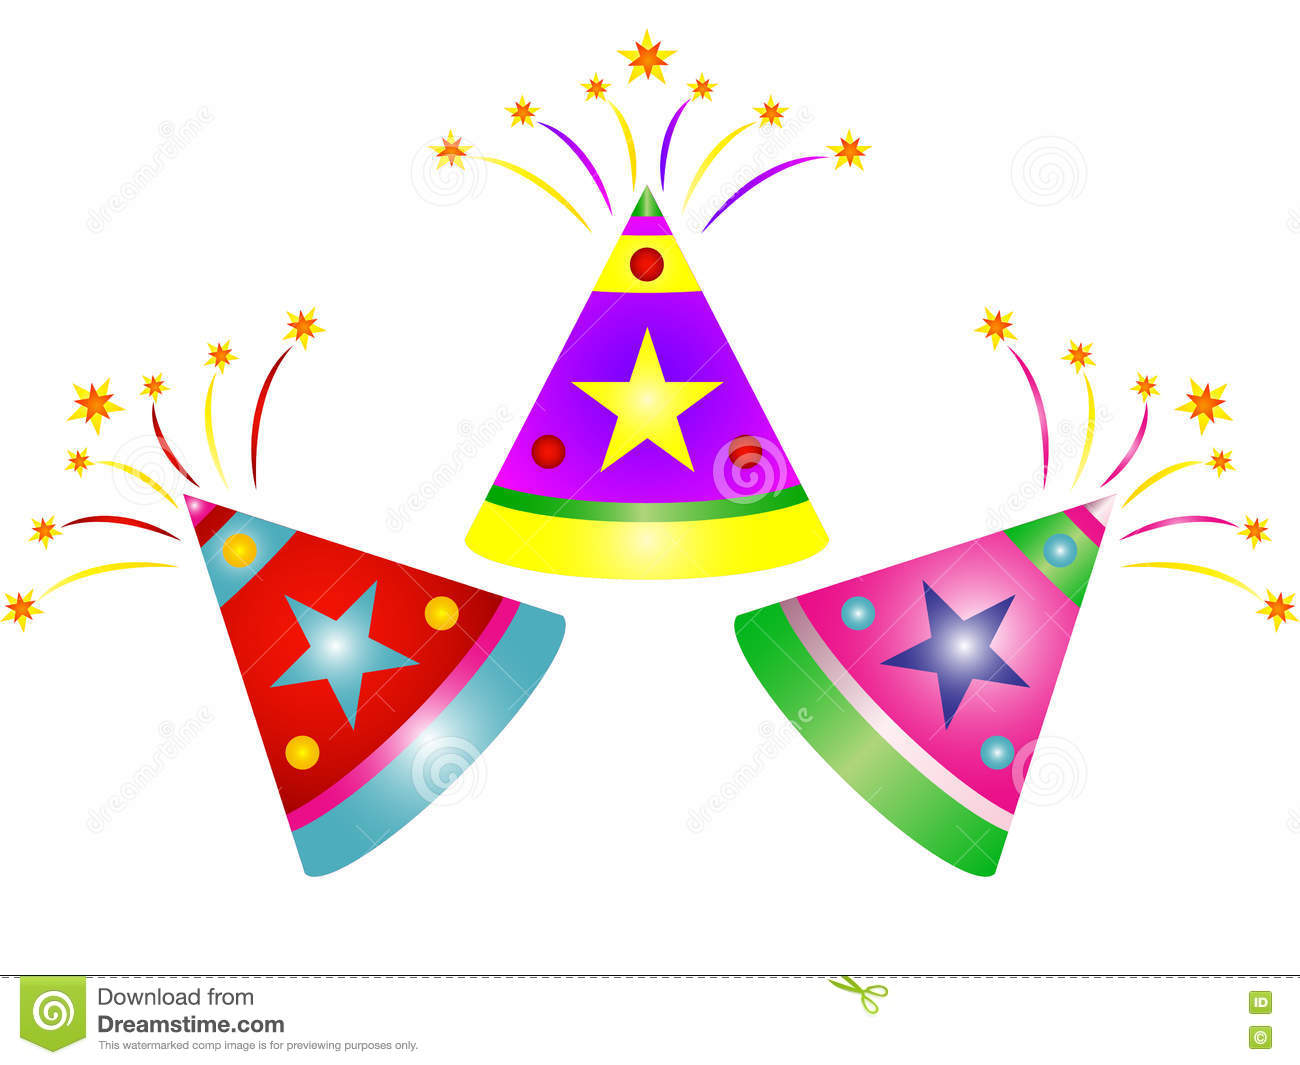 Cartoon Diwali Fireworks Clipart Stock Photo - Image: 77467010